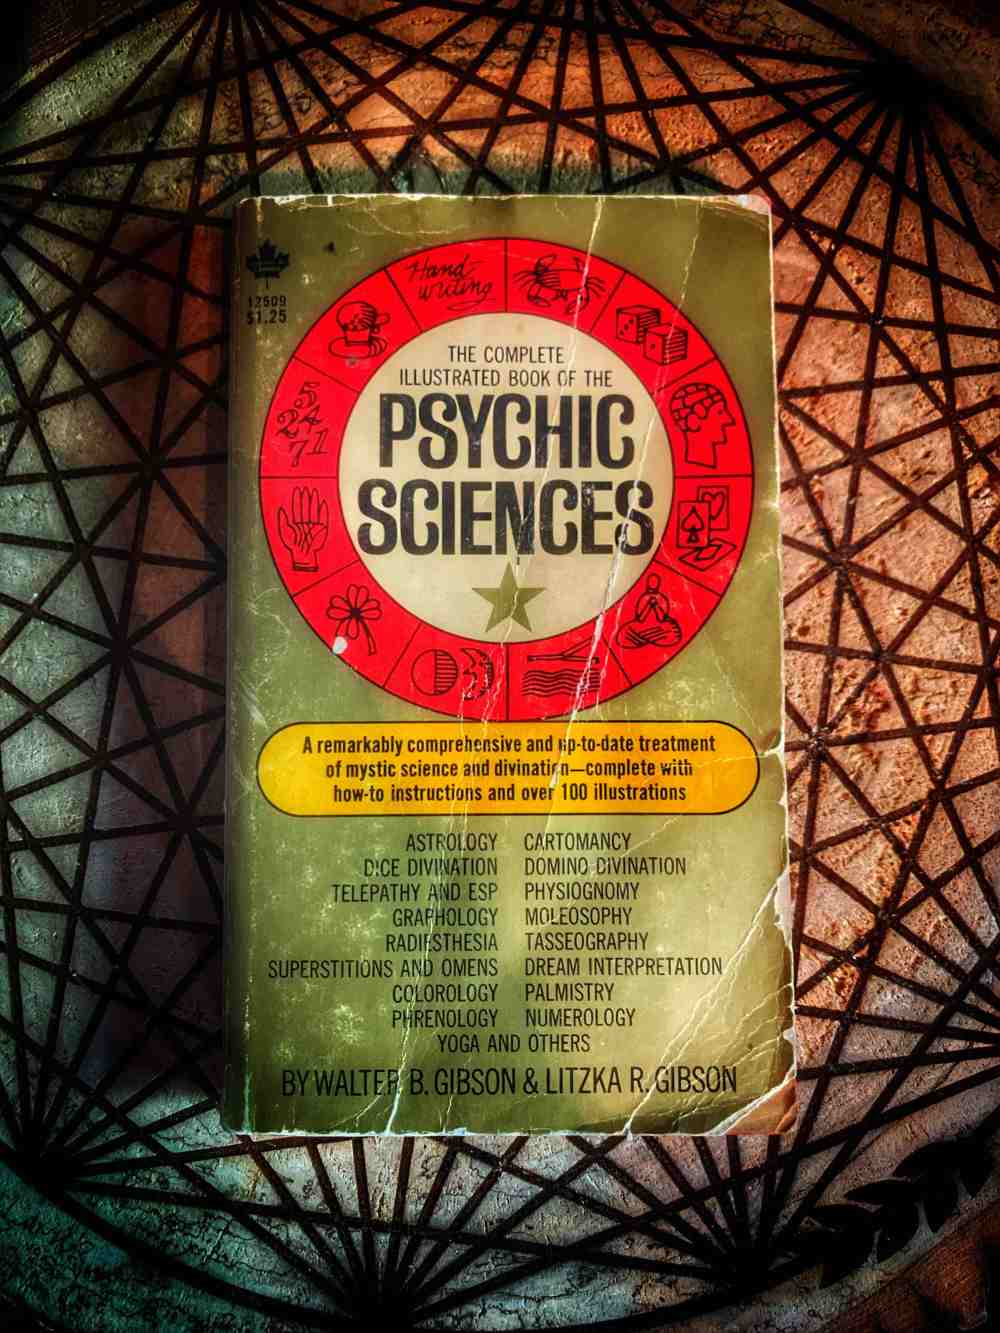 The Complete Illustrated Book of the Psychic Sciences